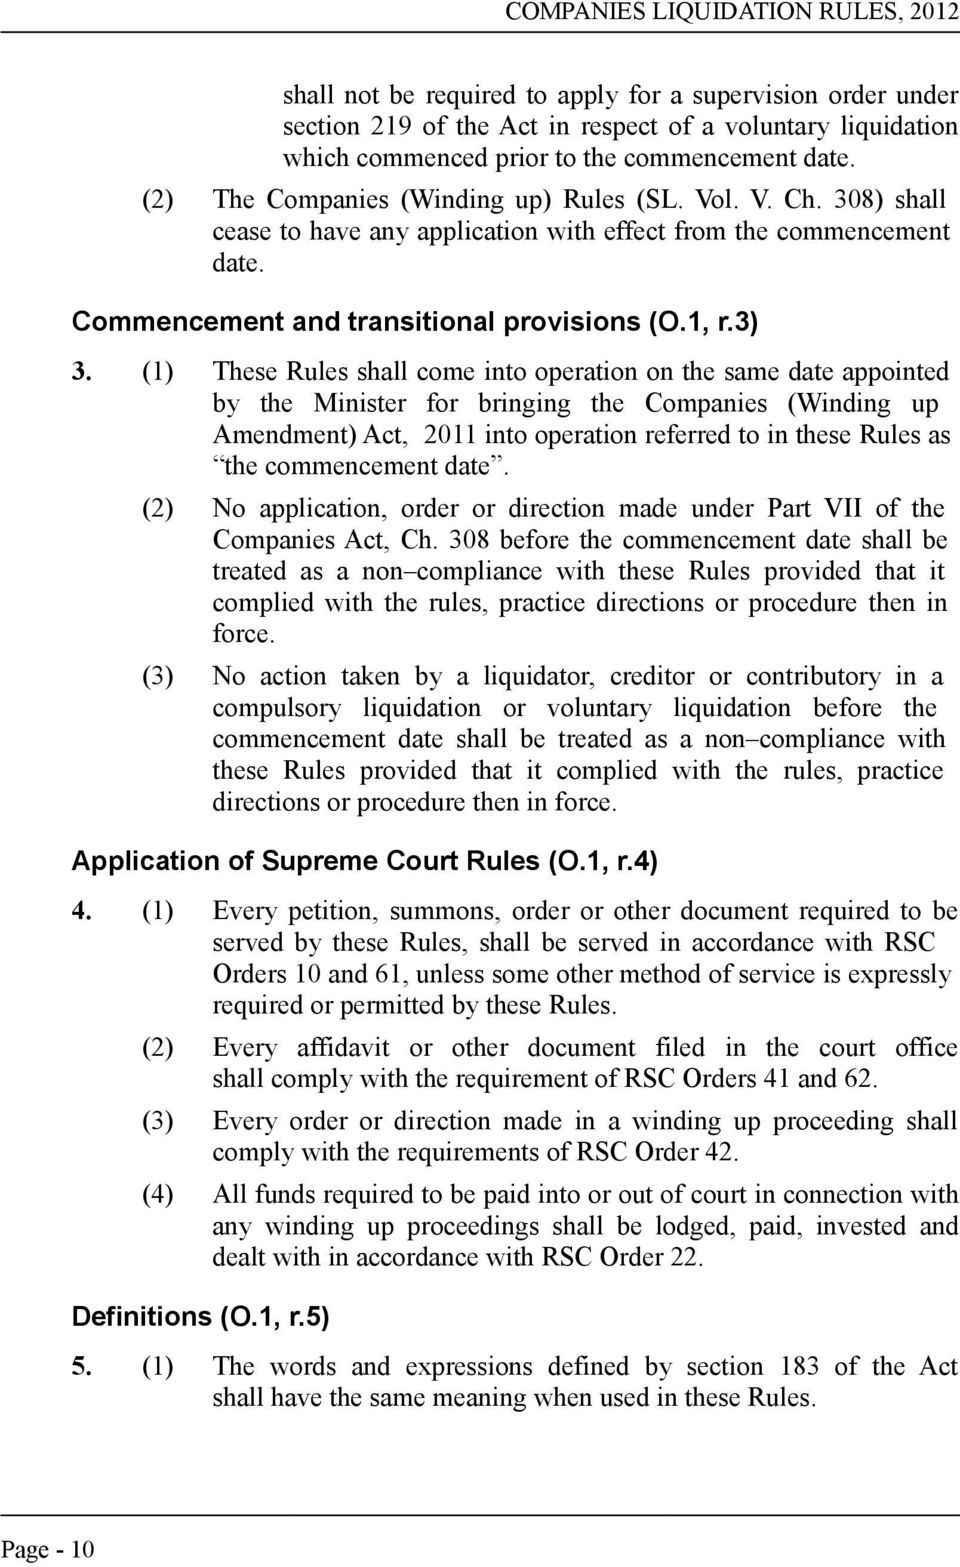 (1) These Rules shall come into operation on the same date appointed by the Minister for bringing the Companies (Winding up Amendment) Act, 2011 into operation referred to in these Rules as the